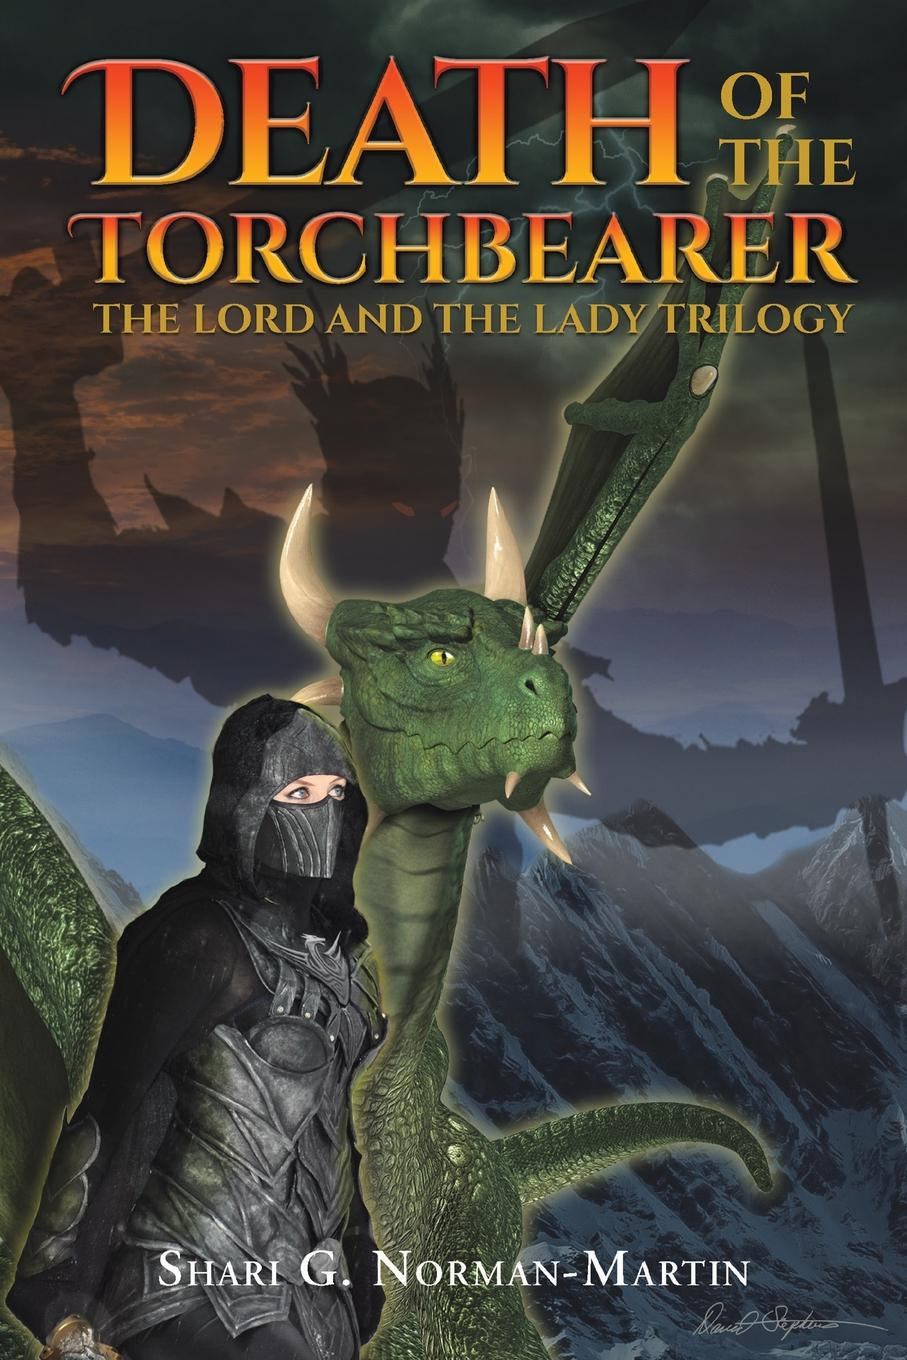 Shari G. Norman-Martin The Lord and the Lady Trilogy... Death of the Torchbearer words and deeds